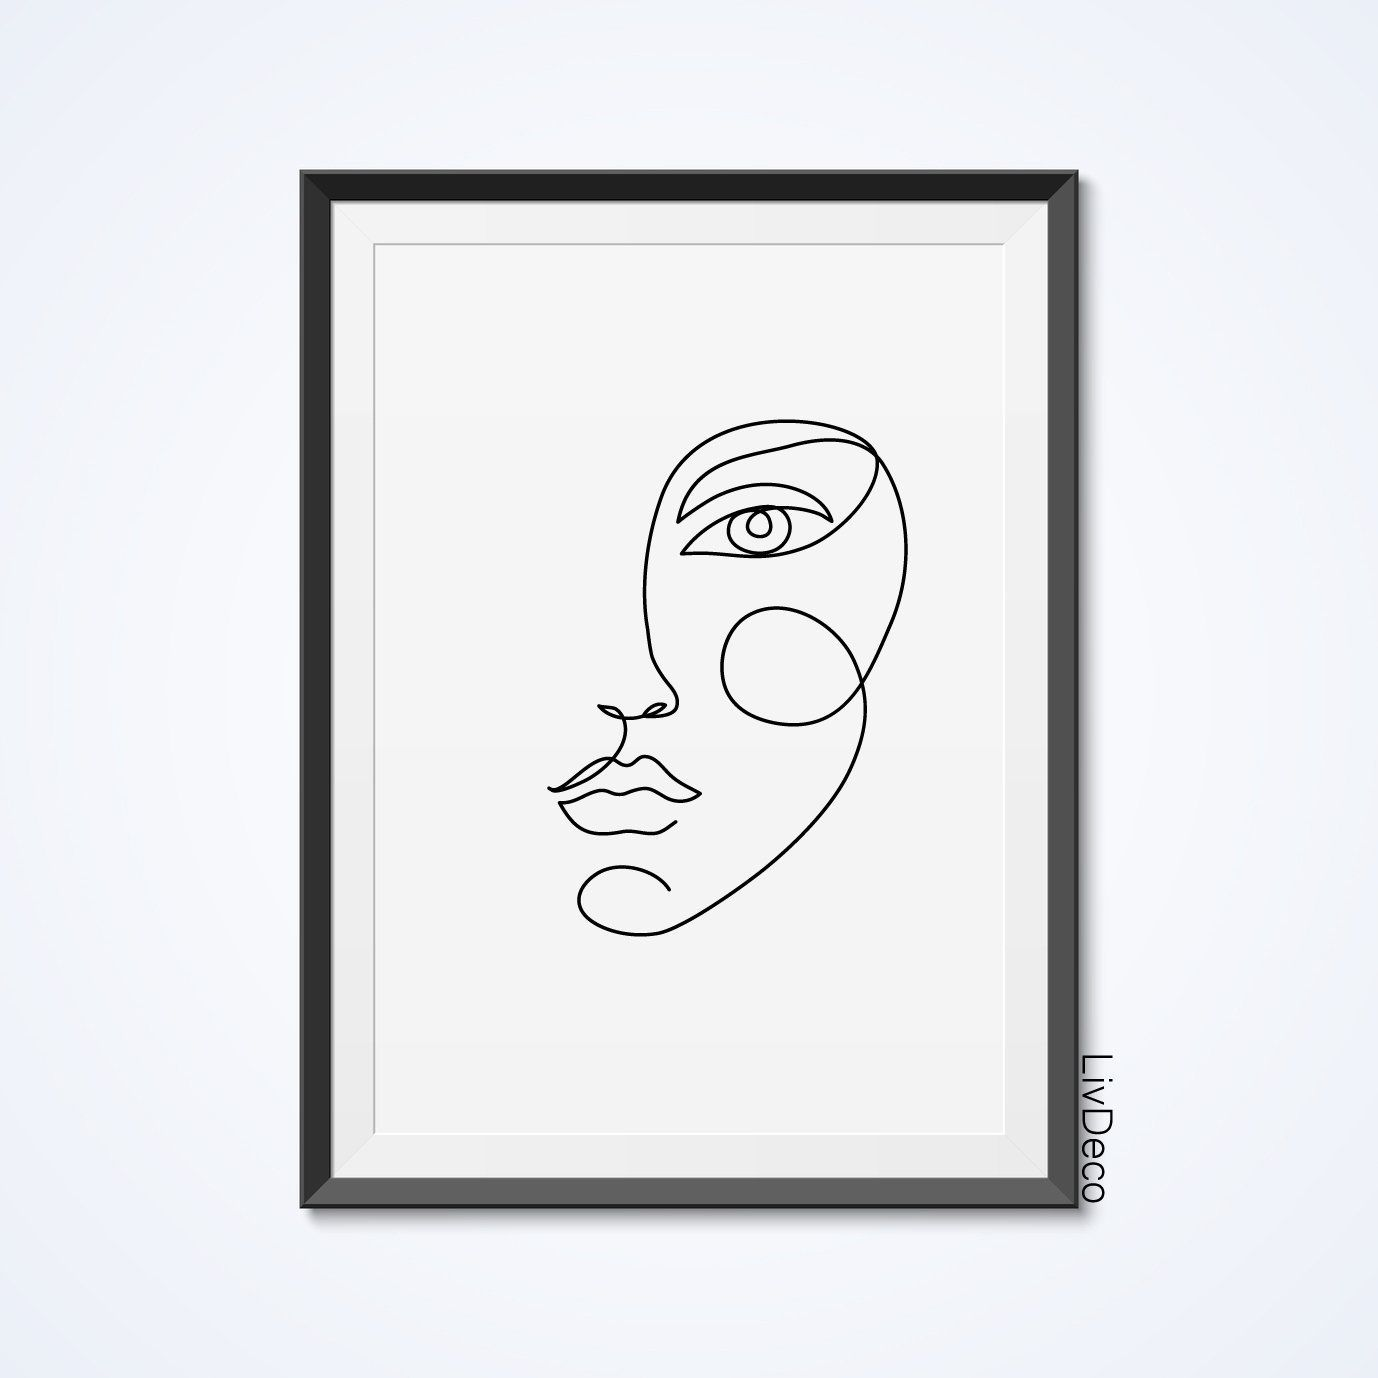 Black And White Wall Artideas: Woman Face One Line Drawing Abstract Simple Minimalist Art